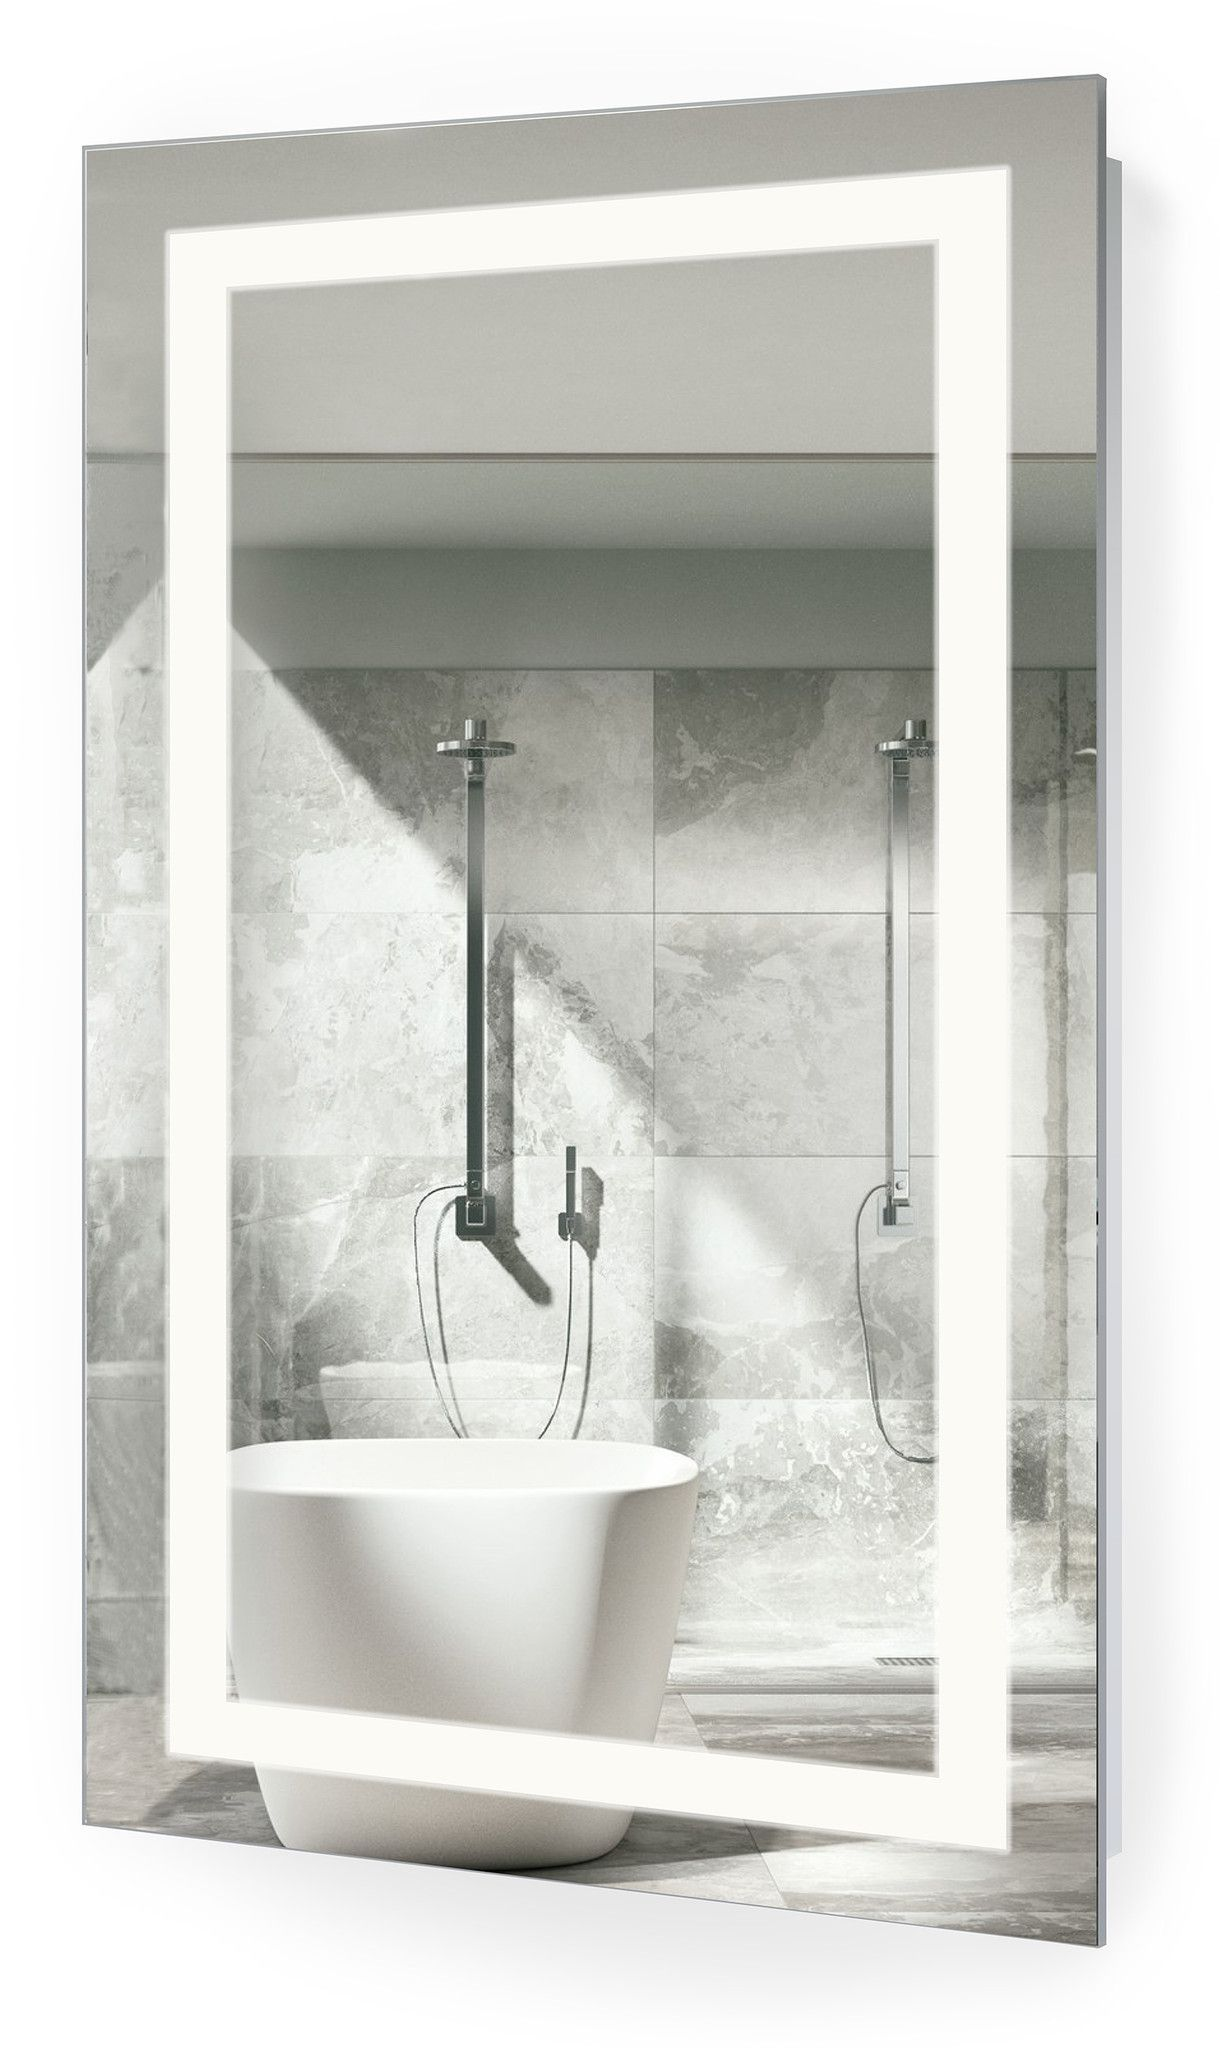 Create Photo Gallery For Website LED Bathroom Mirror Inch X Inch Lighted Vanity Mirror Includes Dimmer and Defogger